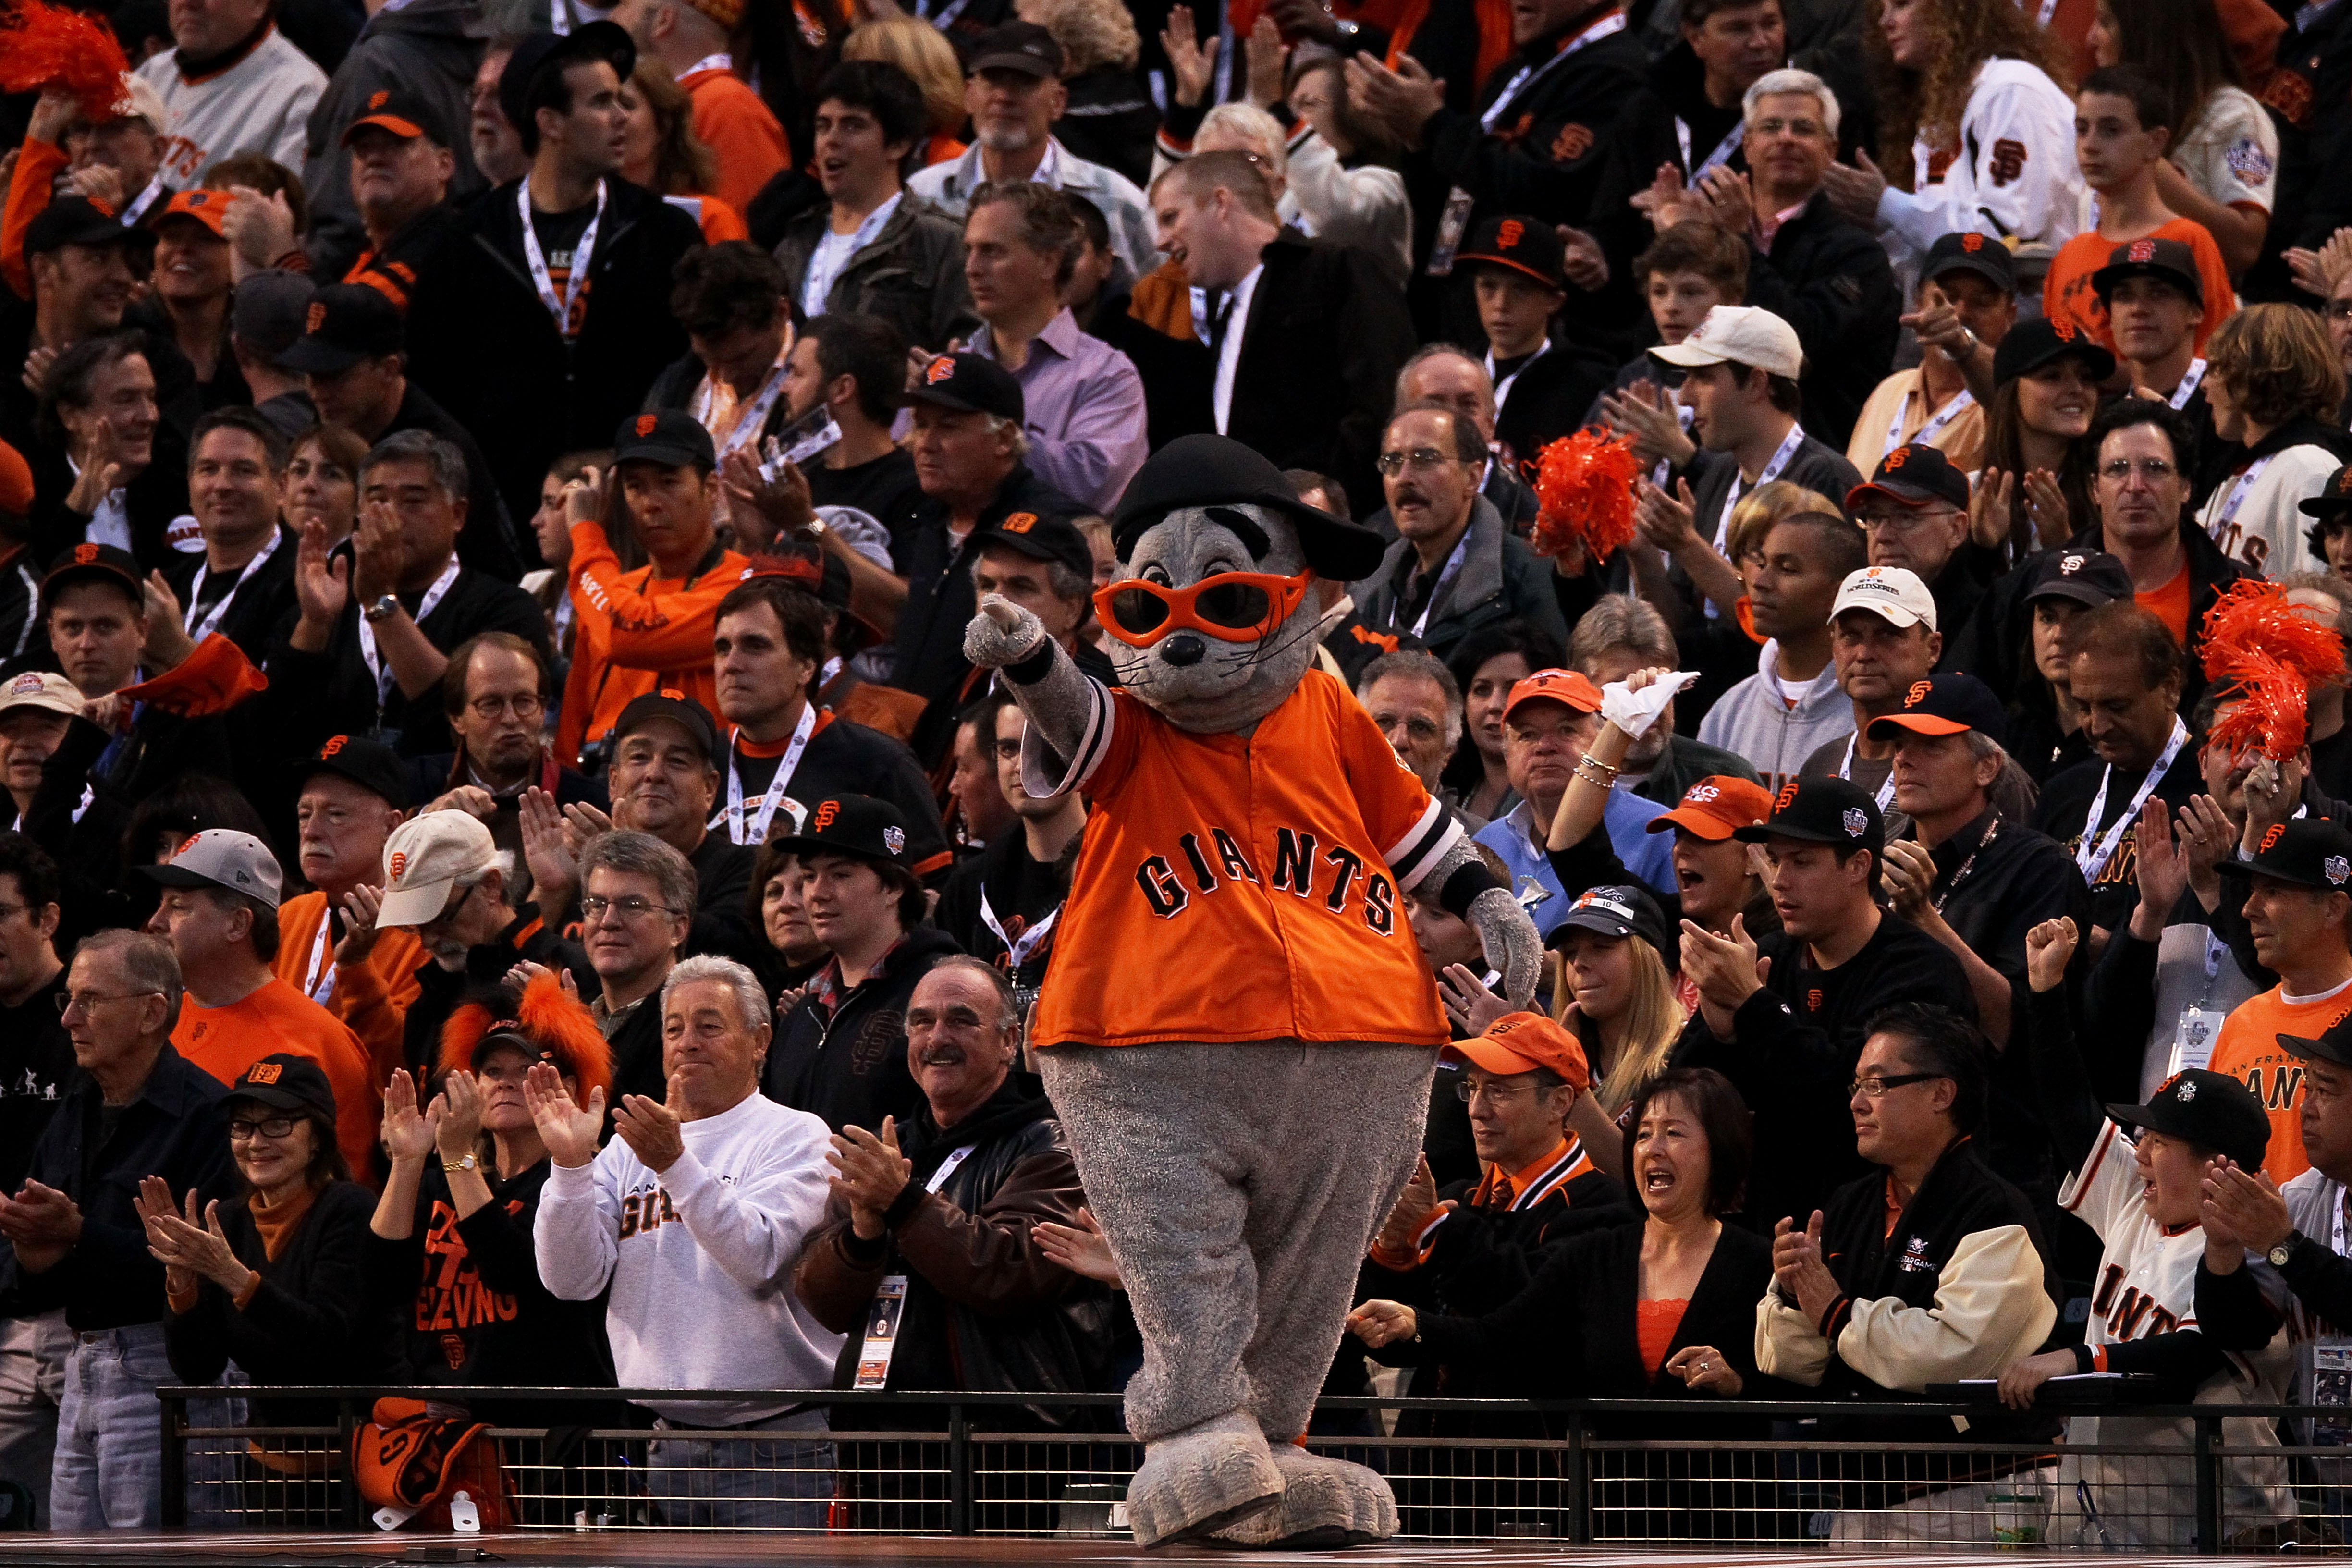 SAN FRANCISCO - OCTOBER 27:  The San Francisco Giants mascot Lou Seal performs during Game One of the 2010 MLB World Series at AT&T Park on October 27, 2010 in San Francisco, California.  (Photo by Elsa/Getty Images)